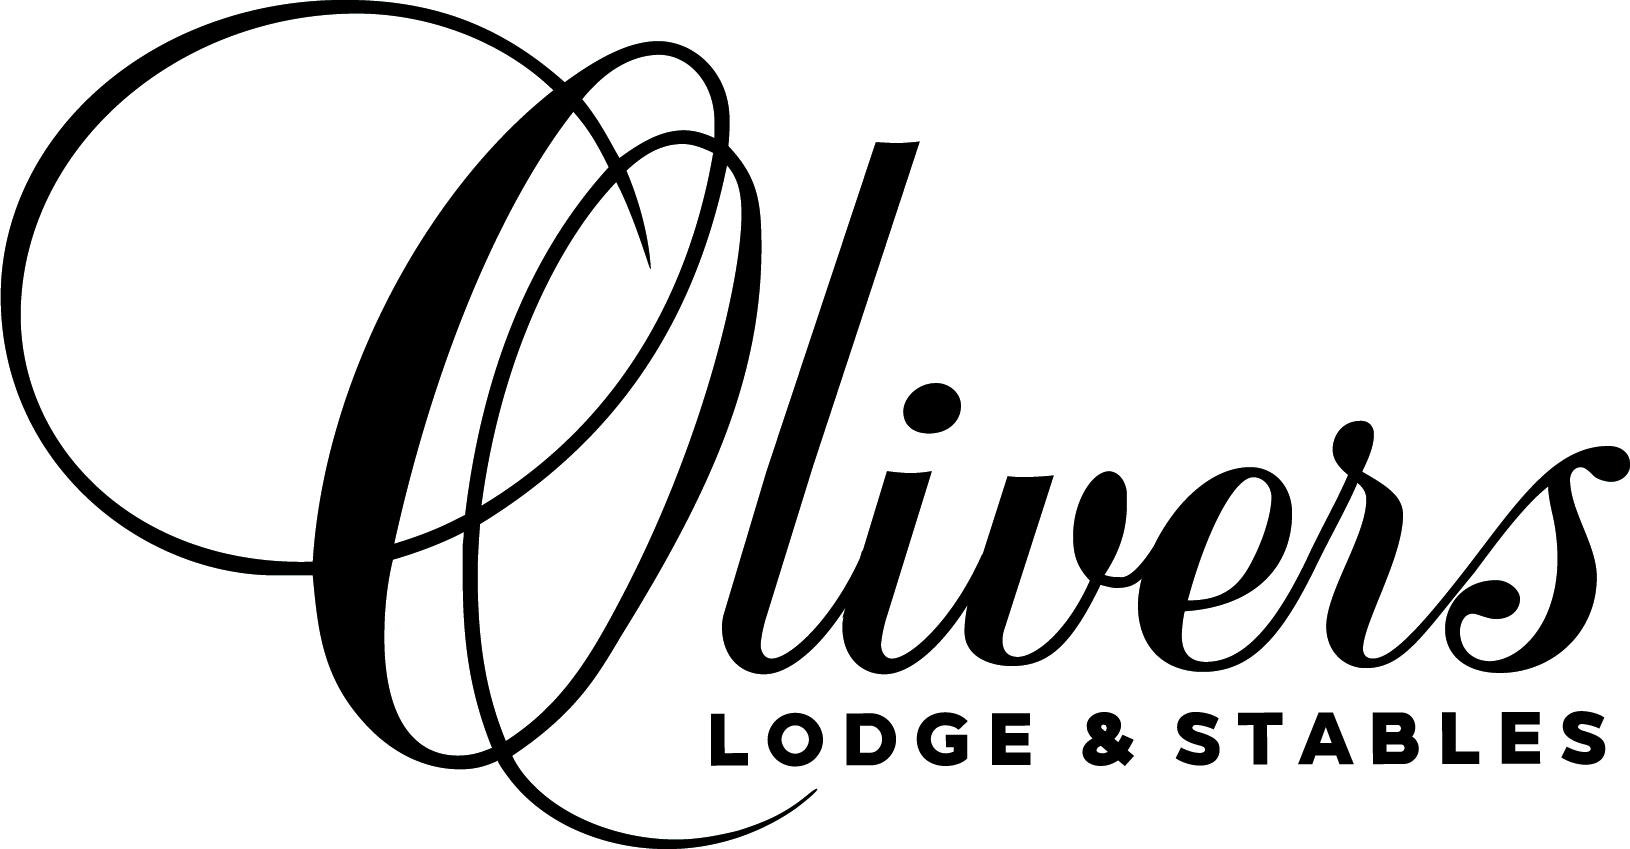 olivers lodge and stables logo